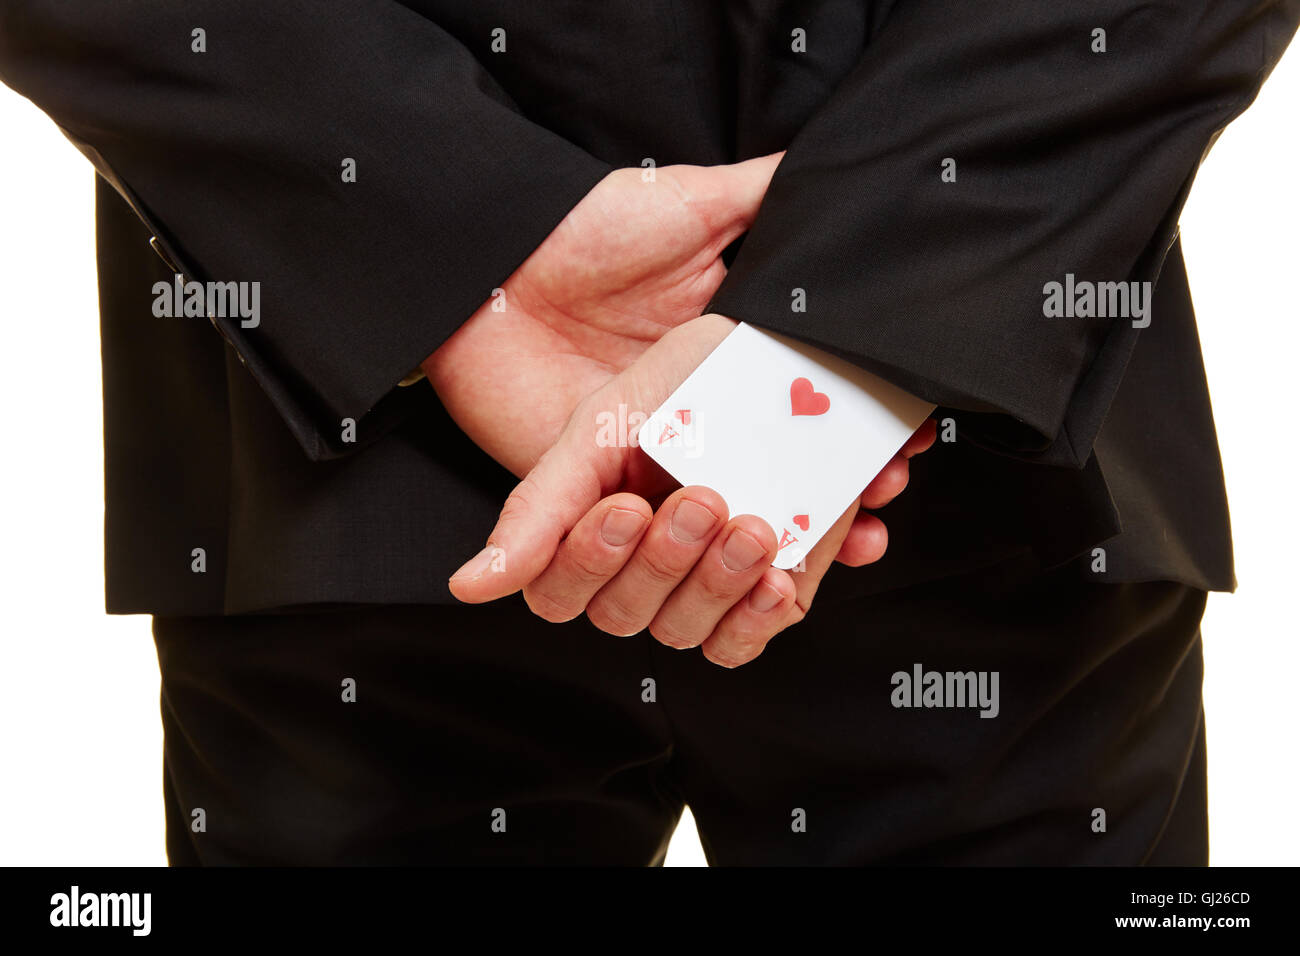 Businessman taken from the back with an ace under his sleeve - Stock Image